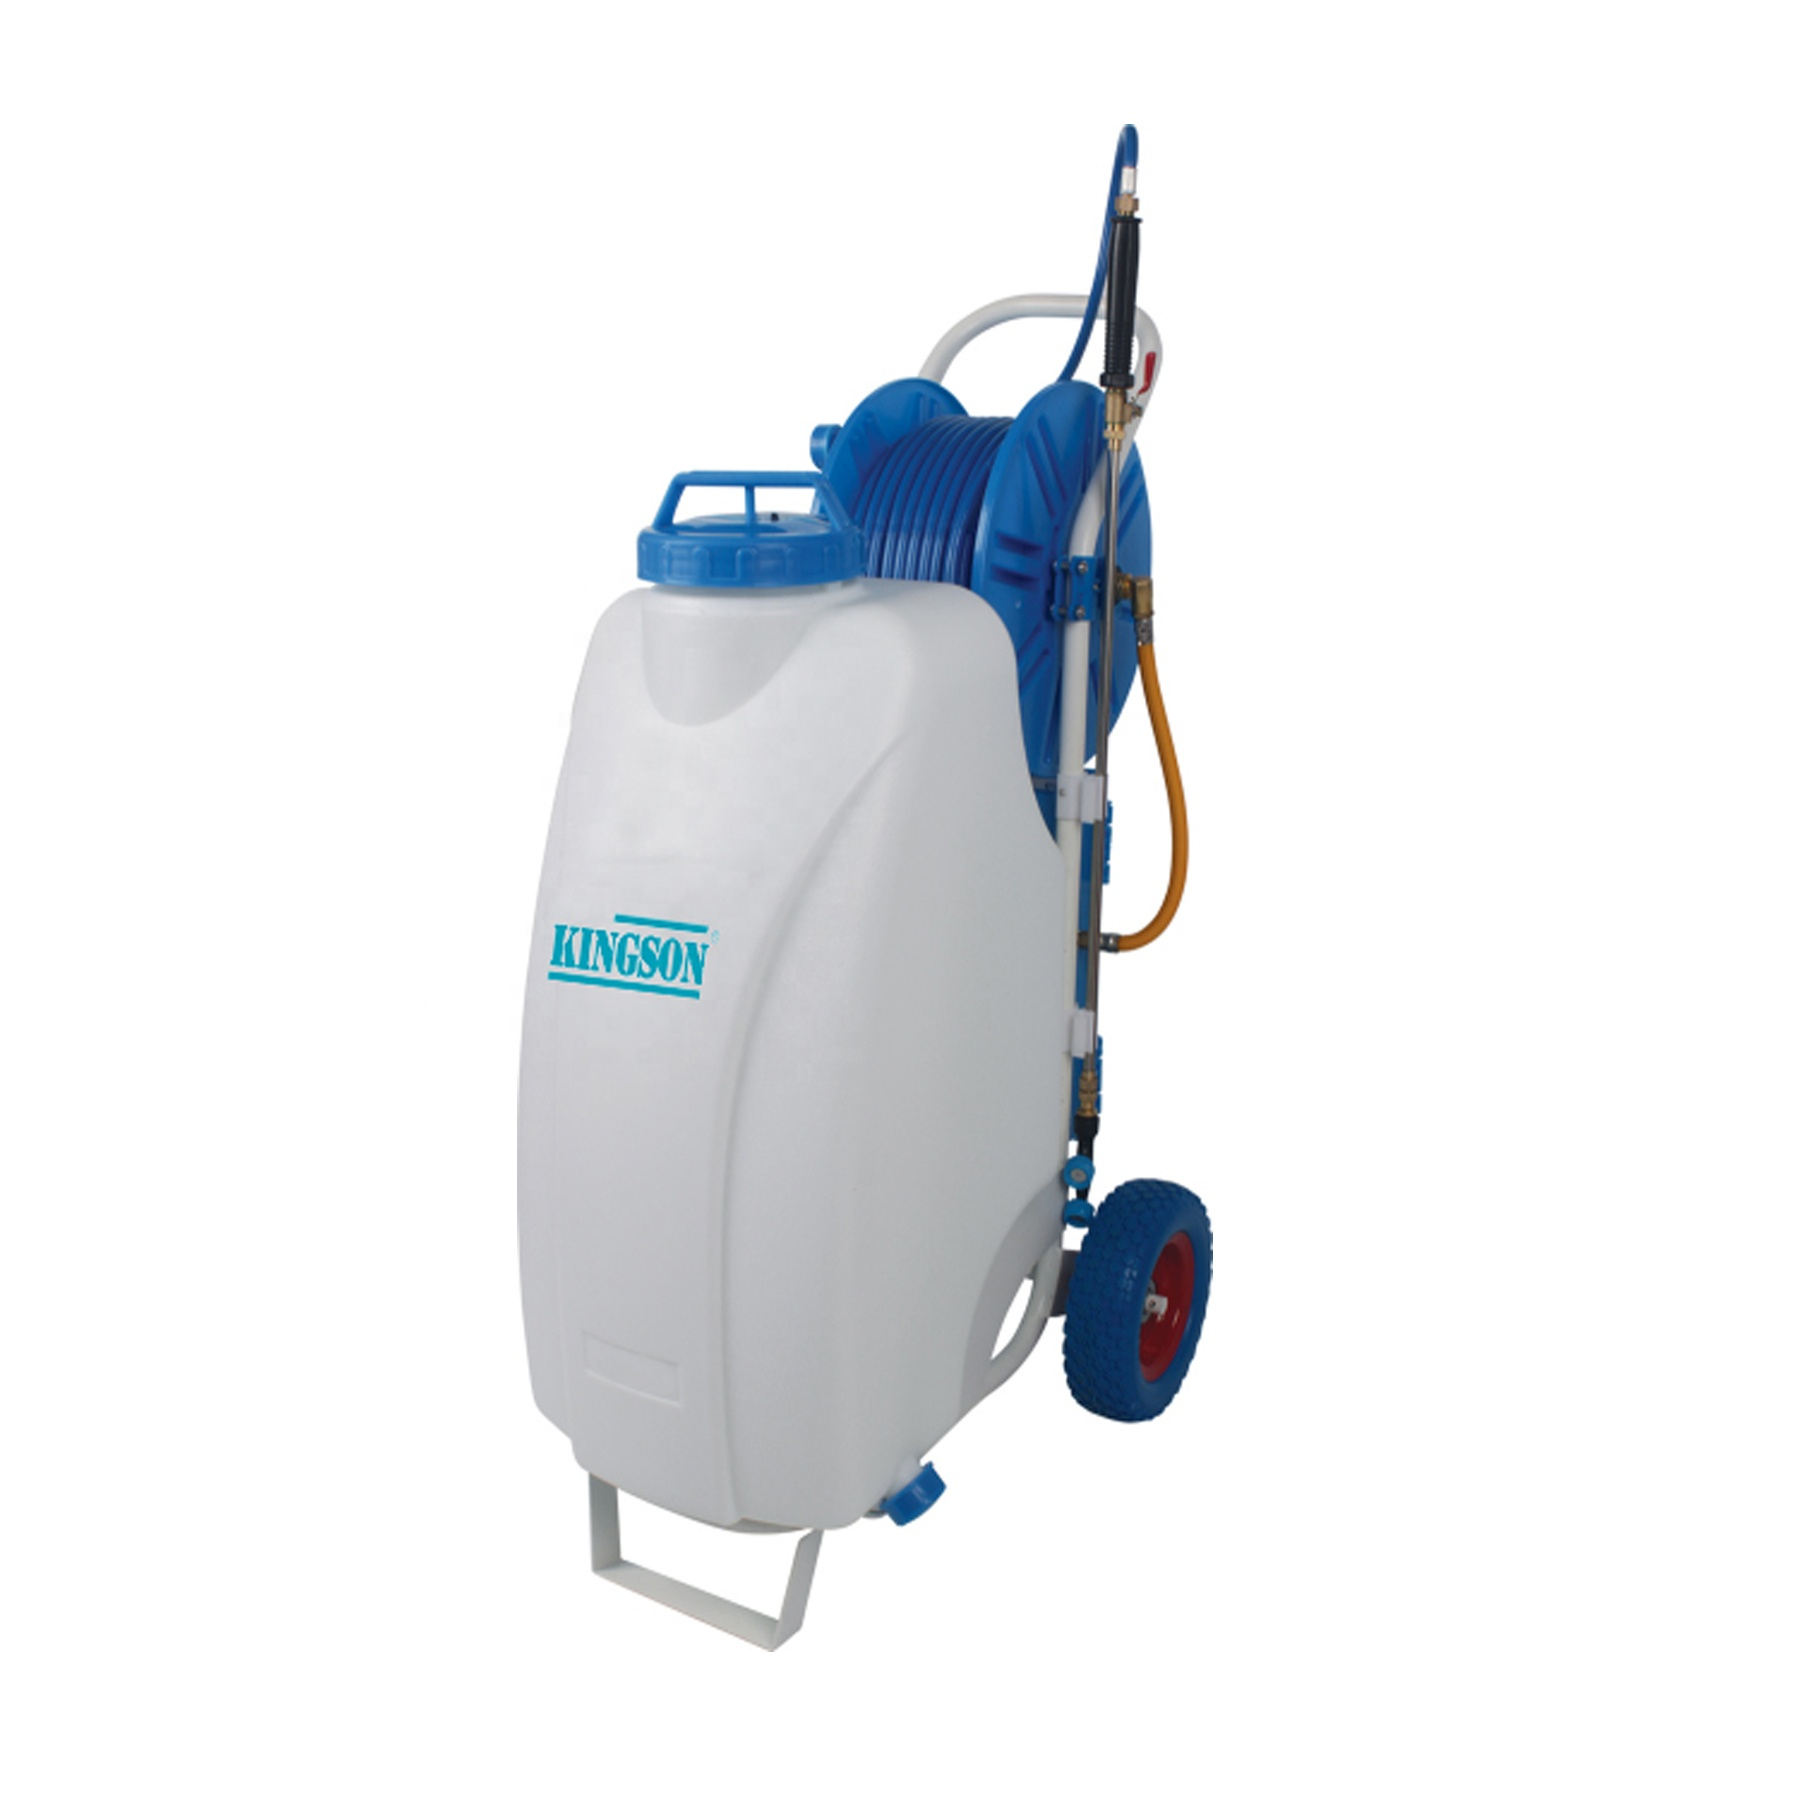 45L Agriculture Electric Motor Wheelbarrow Sprayer with tank Weed <strong>Spraying</strong>